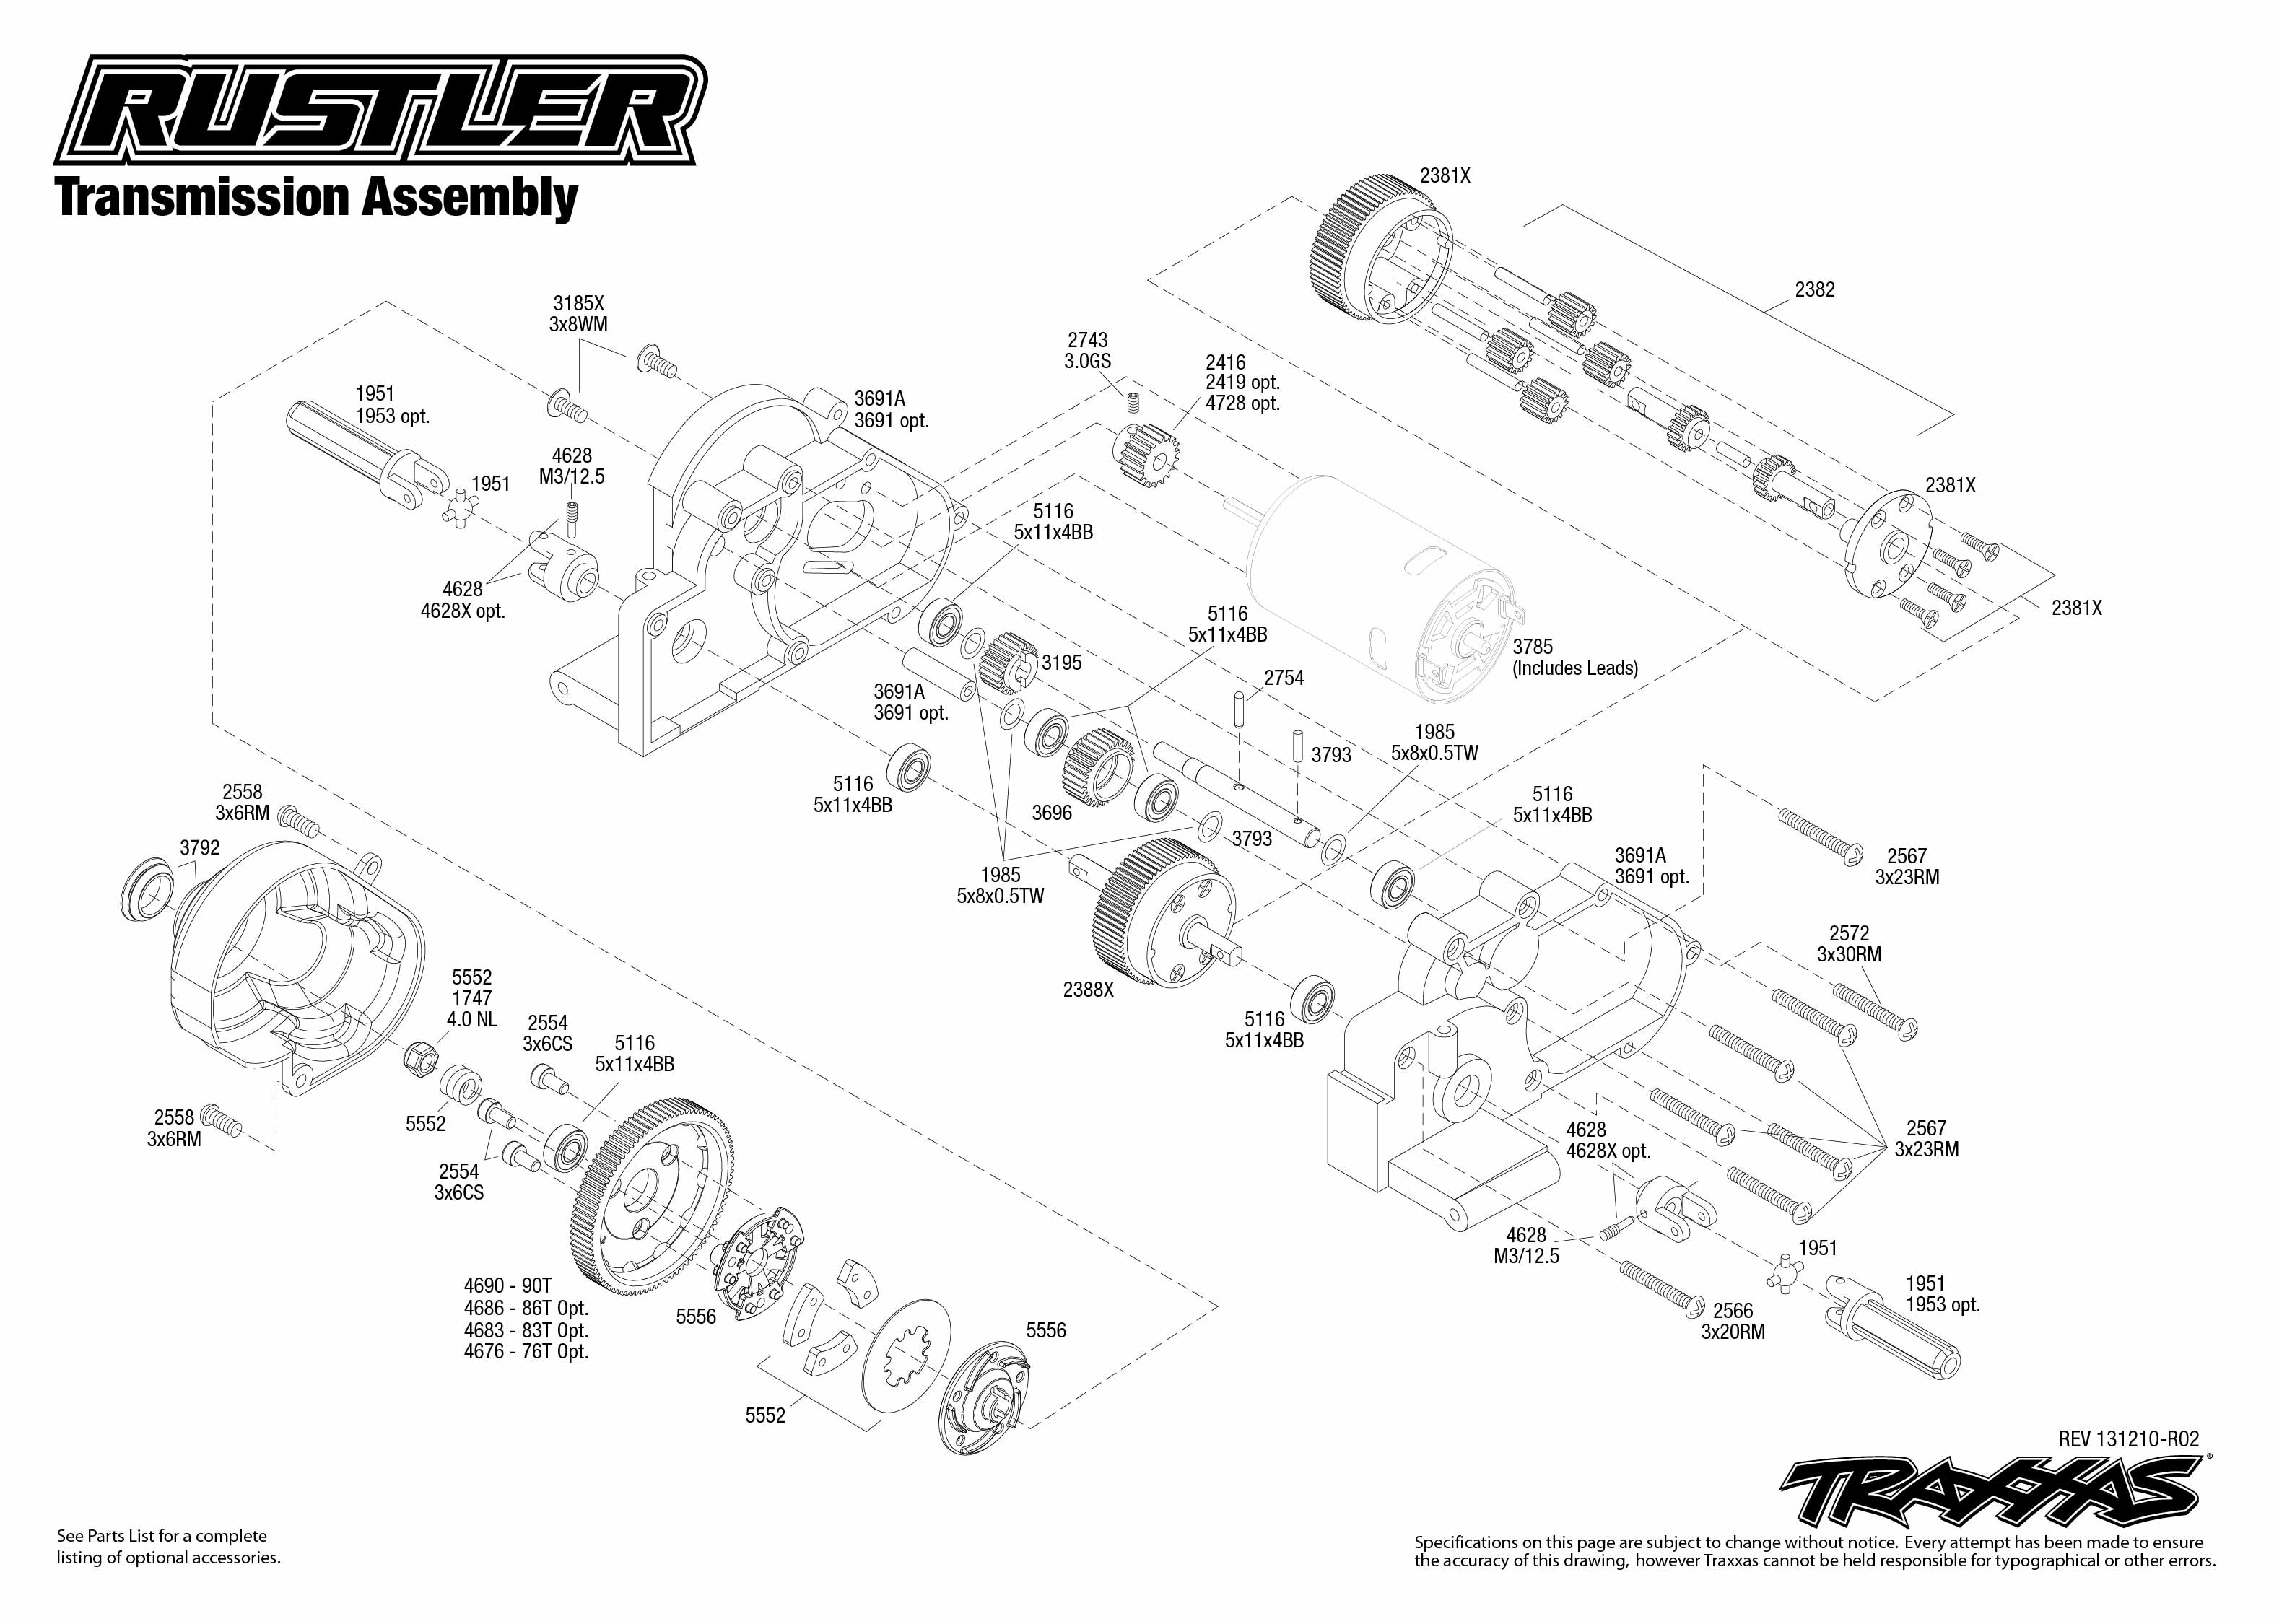 rustler 37054 transmission assembly traxxas rh traxxas com traxxas stampede parts diagram traxxas bandit parts diagram